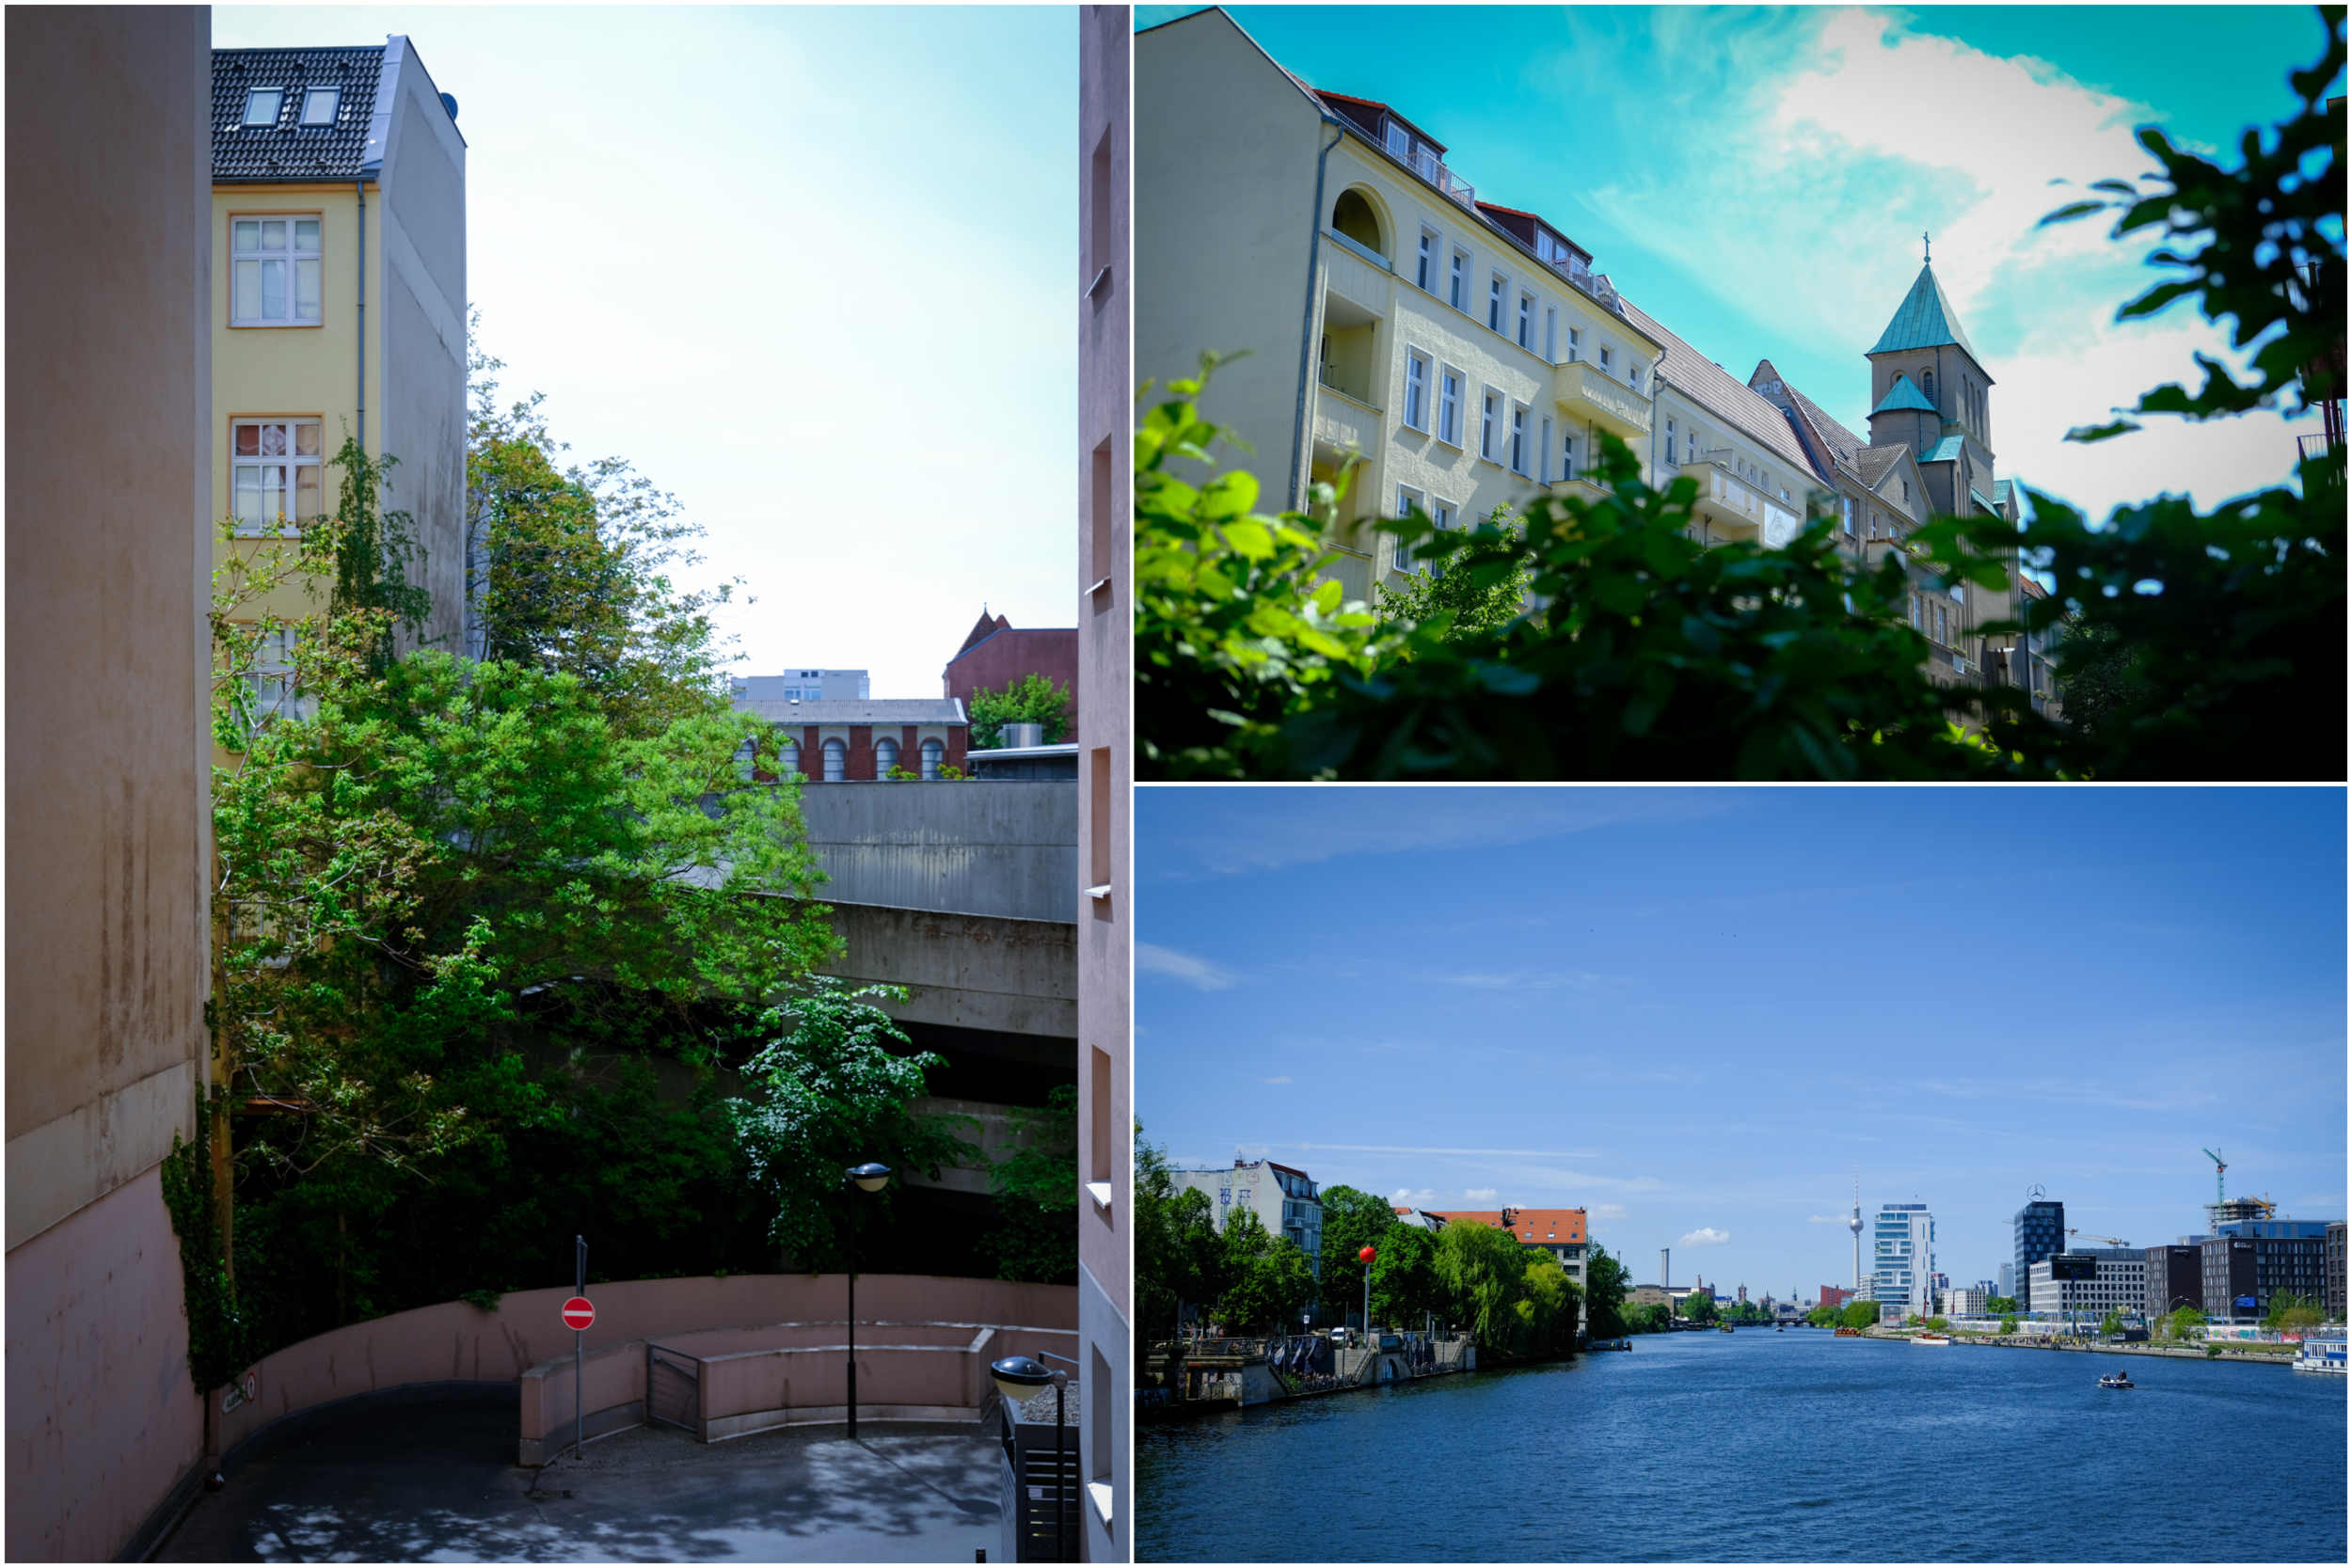 berlin collage 1 (1).png